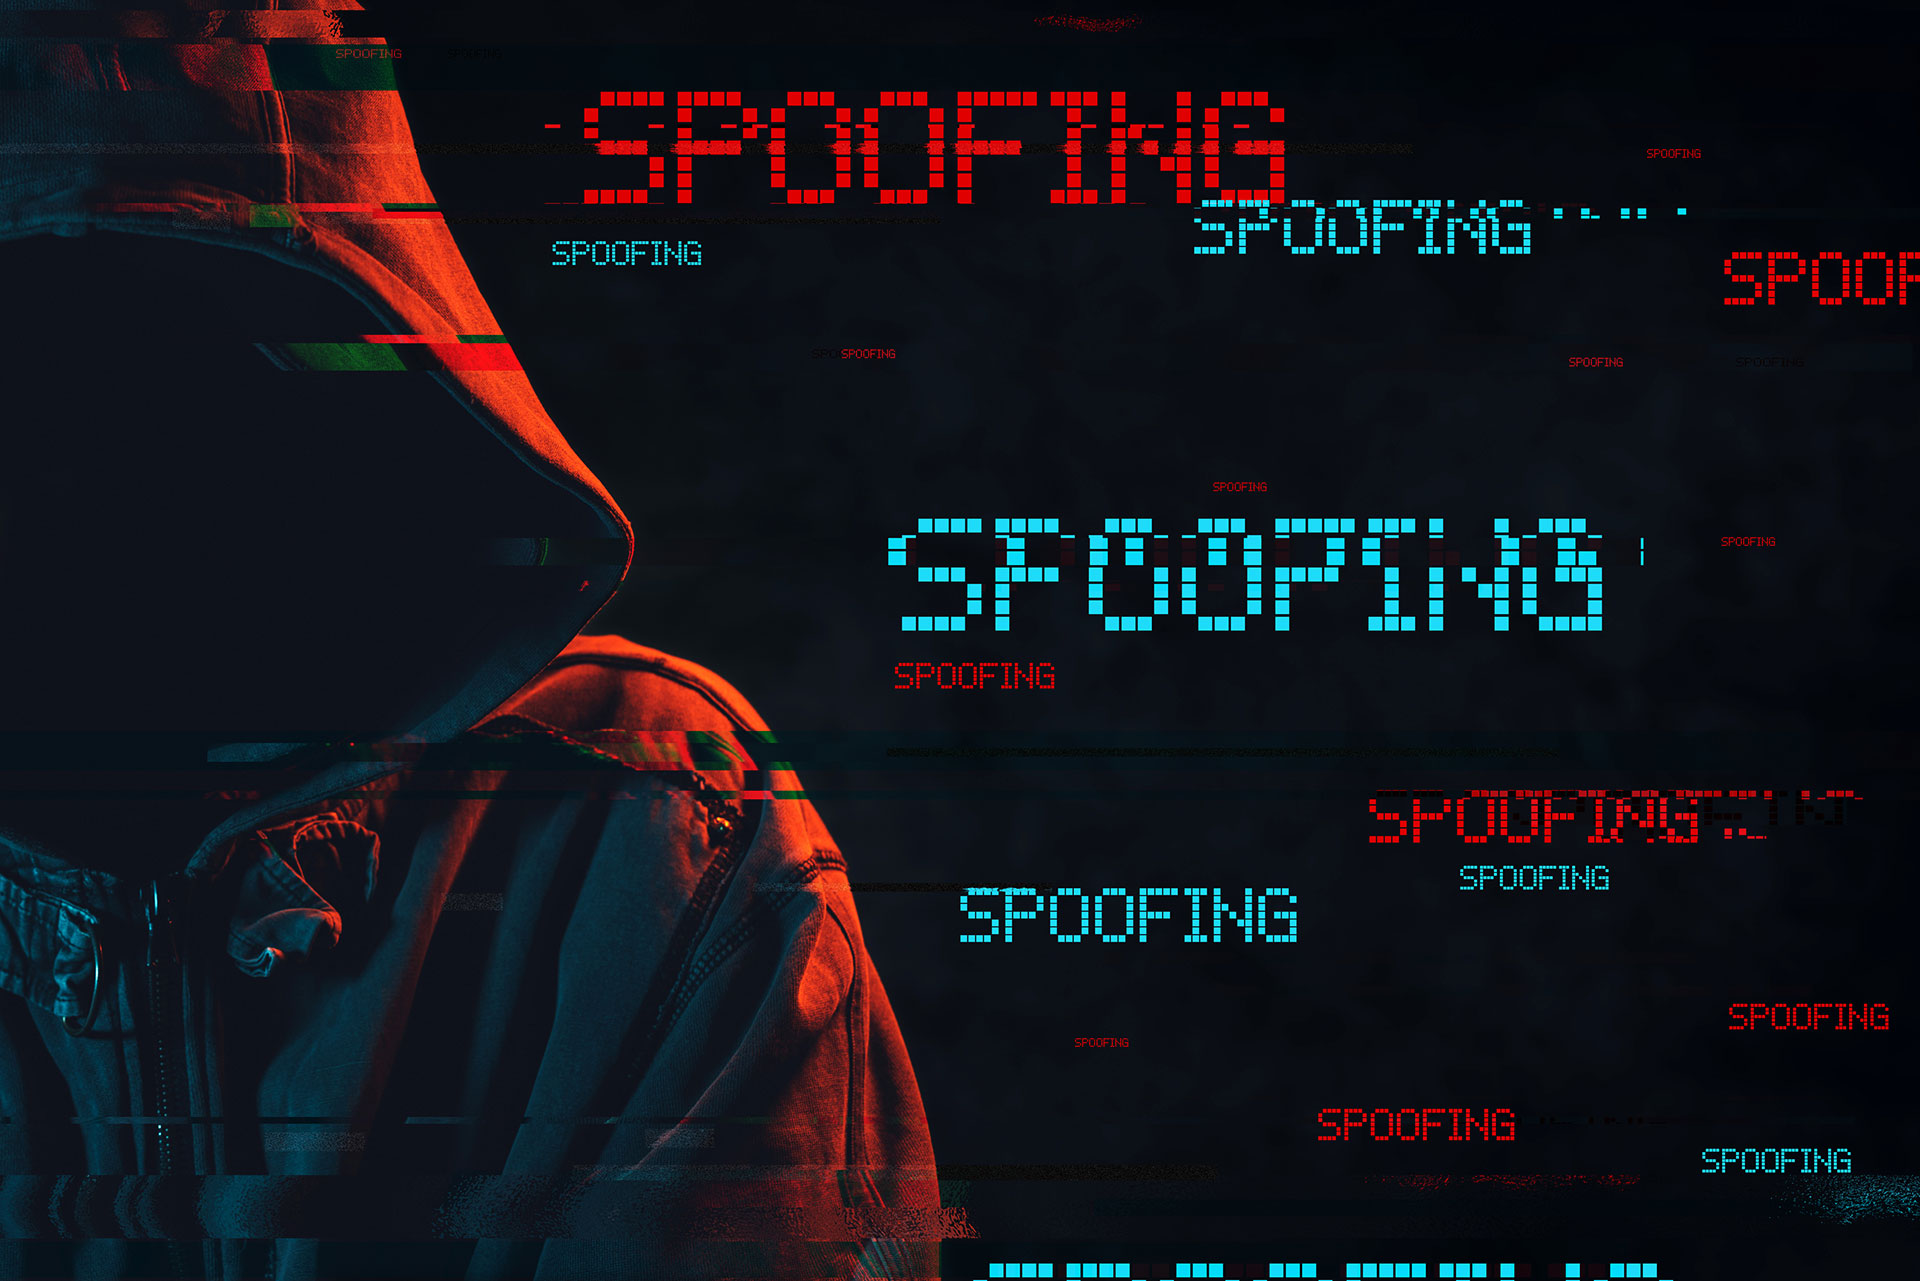 Spoofing! What is it?